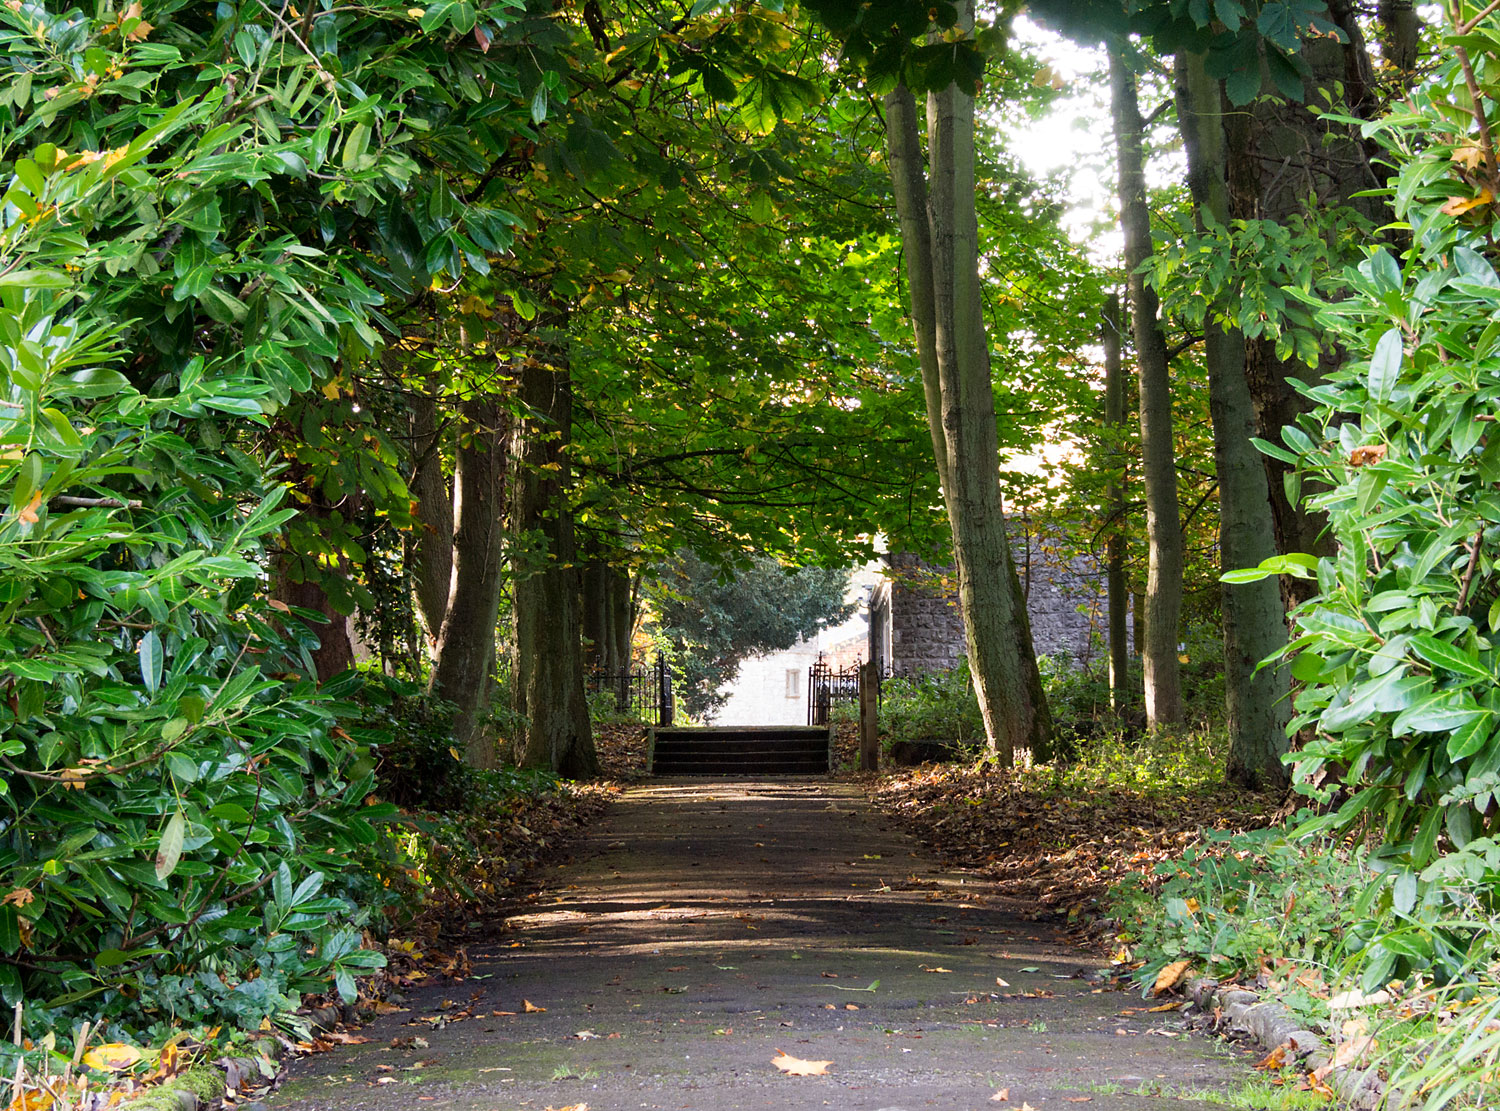 Pathway to the accommodation at Thornbridge Outdoors